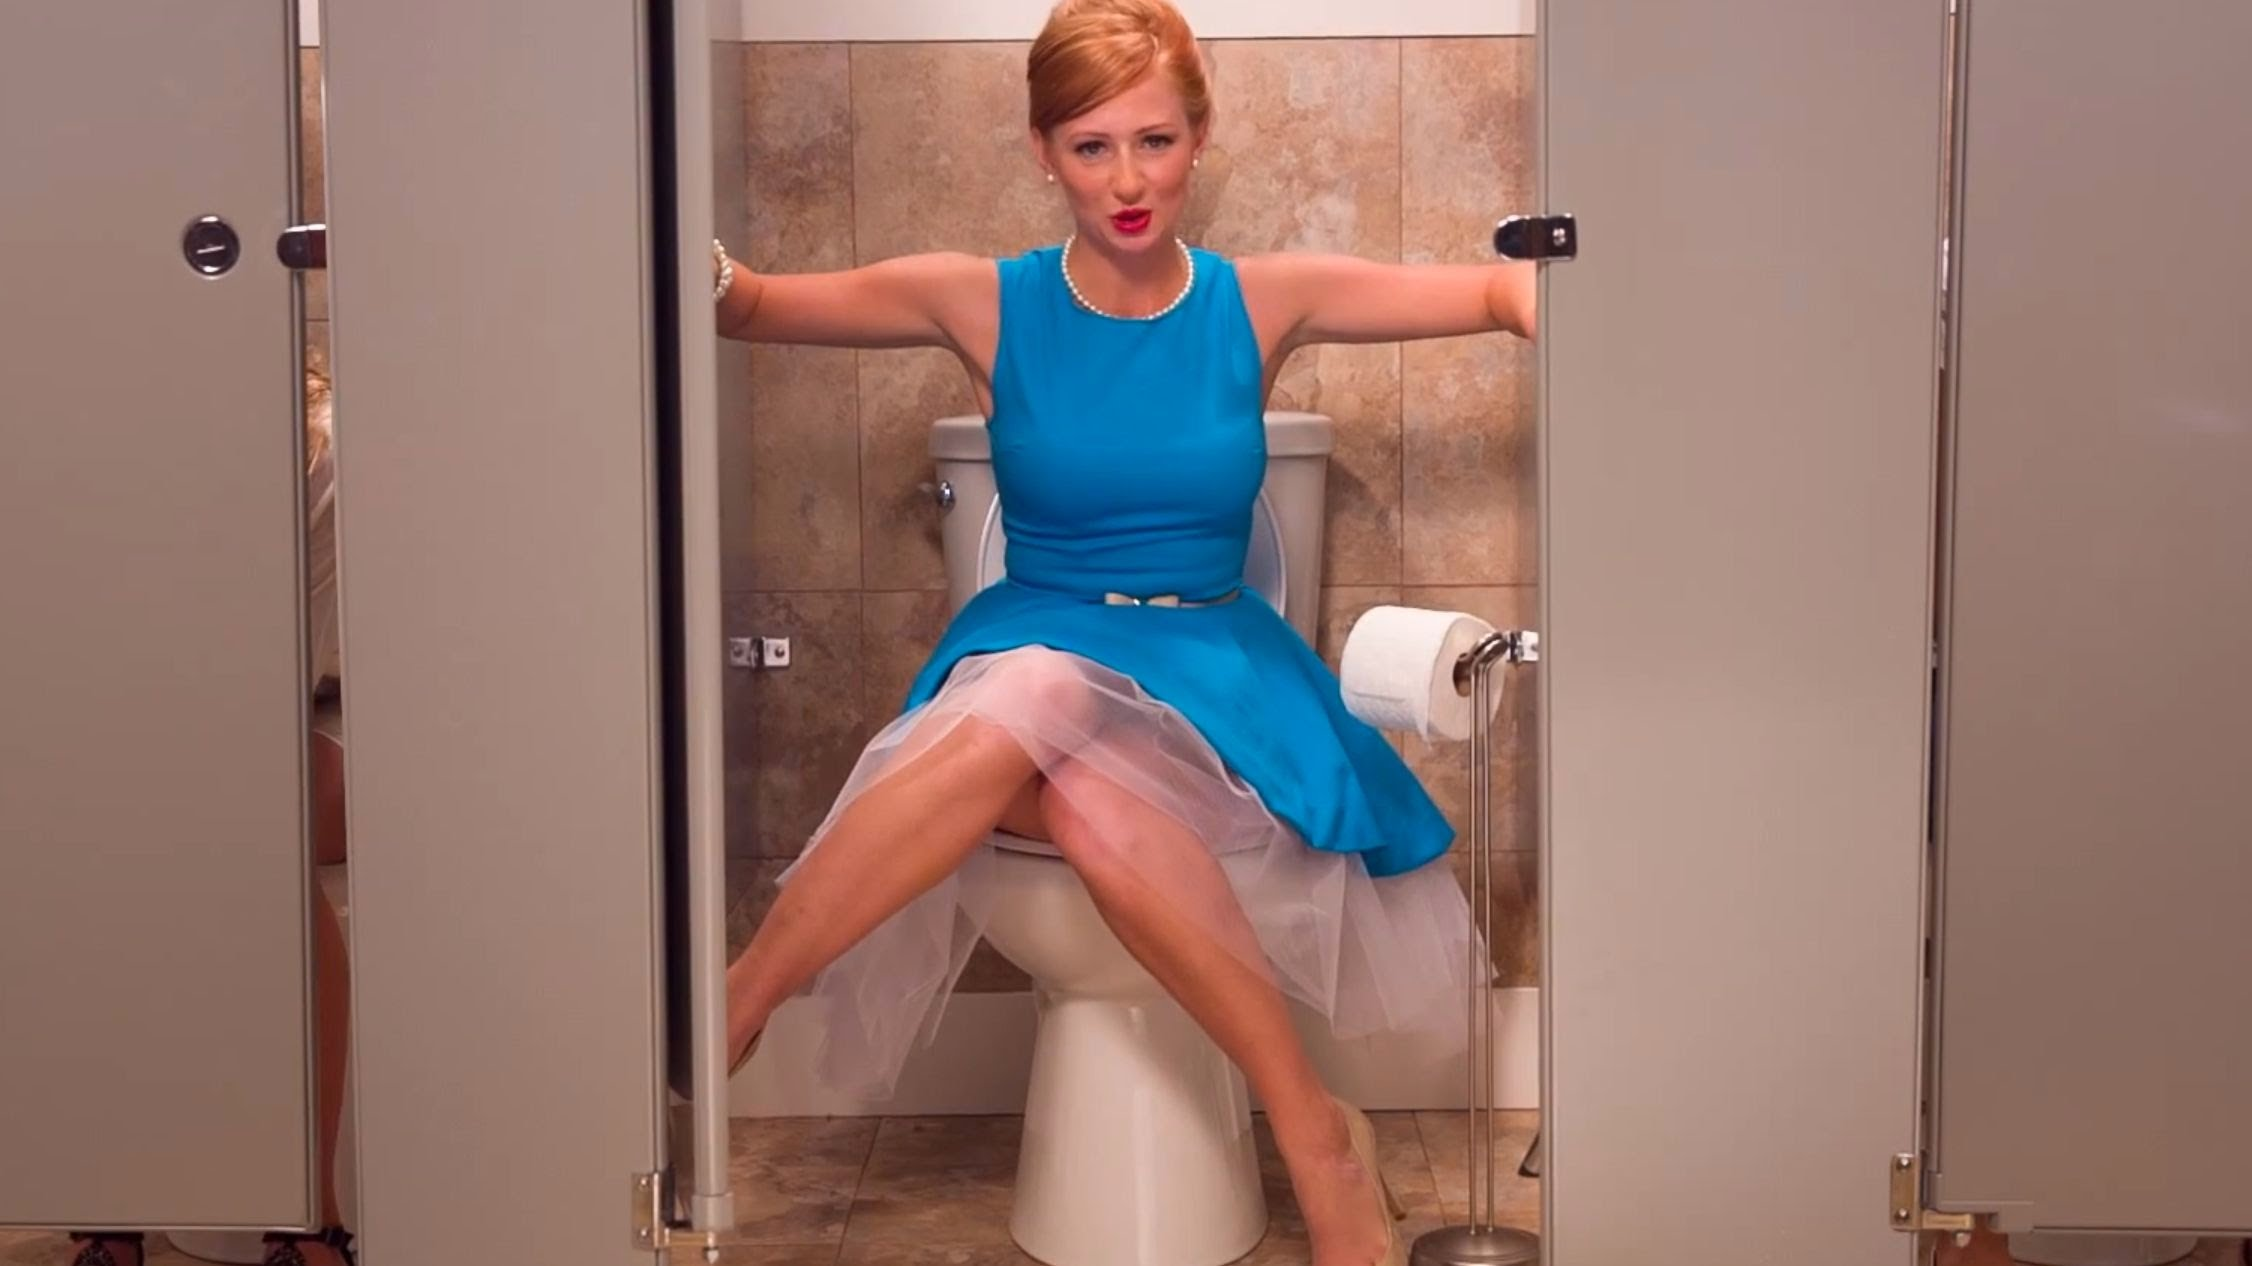 The best marketing video campaign ever? – Poo-Pourri